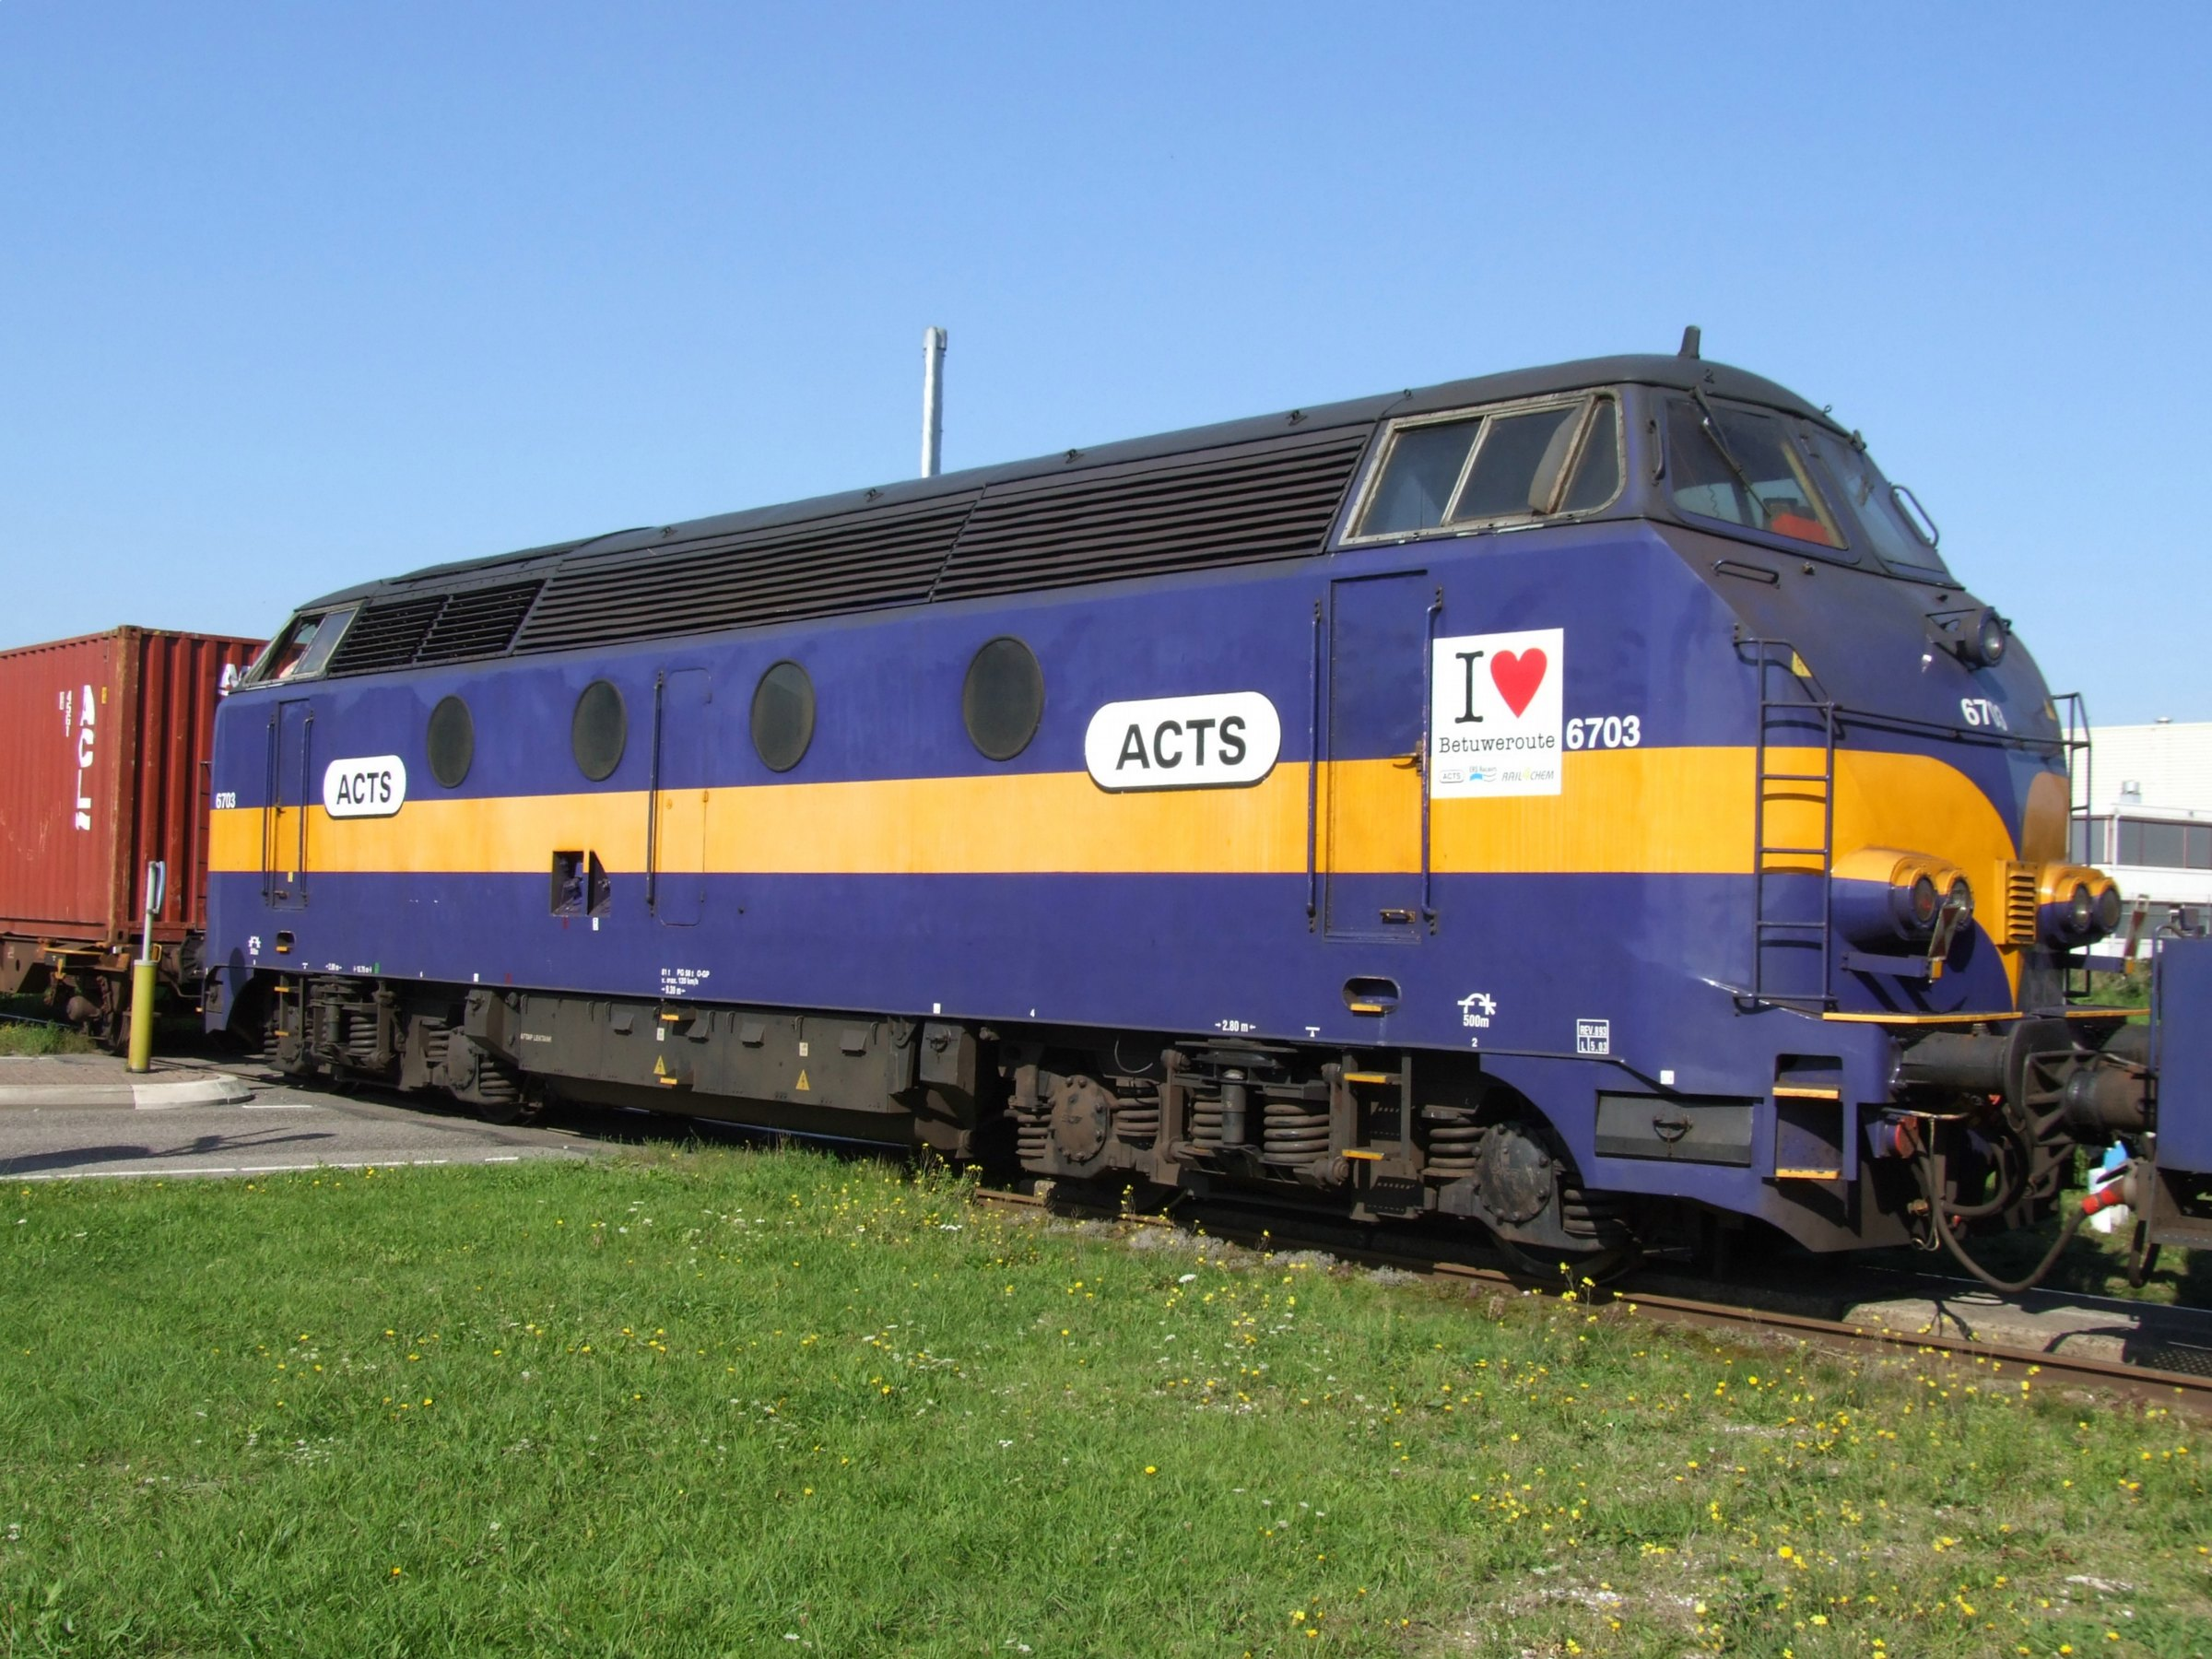 File:ACTS (Afzet Container Transport Systeem) 6703 Series 6700.jpg